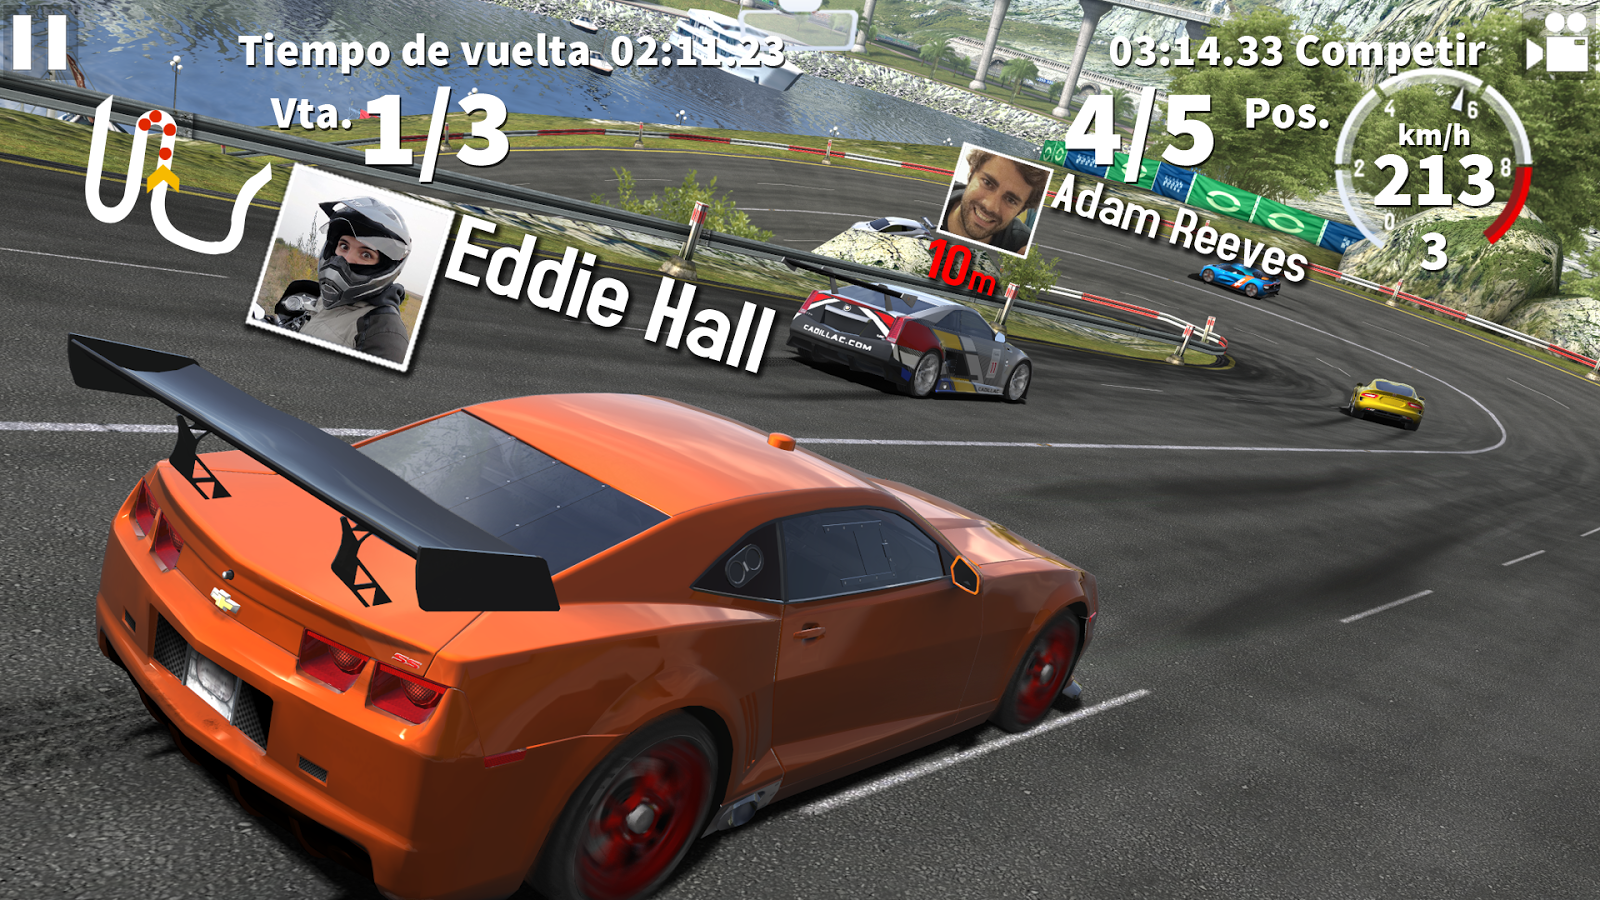 Descargar-nuevo-GT-Racing-The-Real-Car-Experience-gratis-en-Android